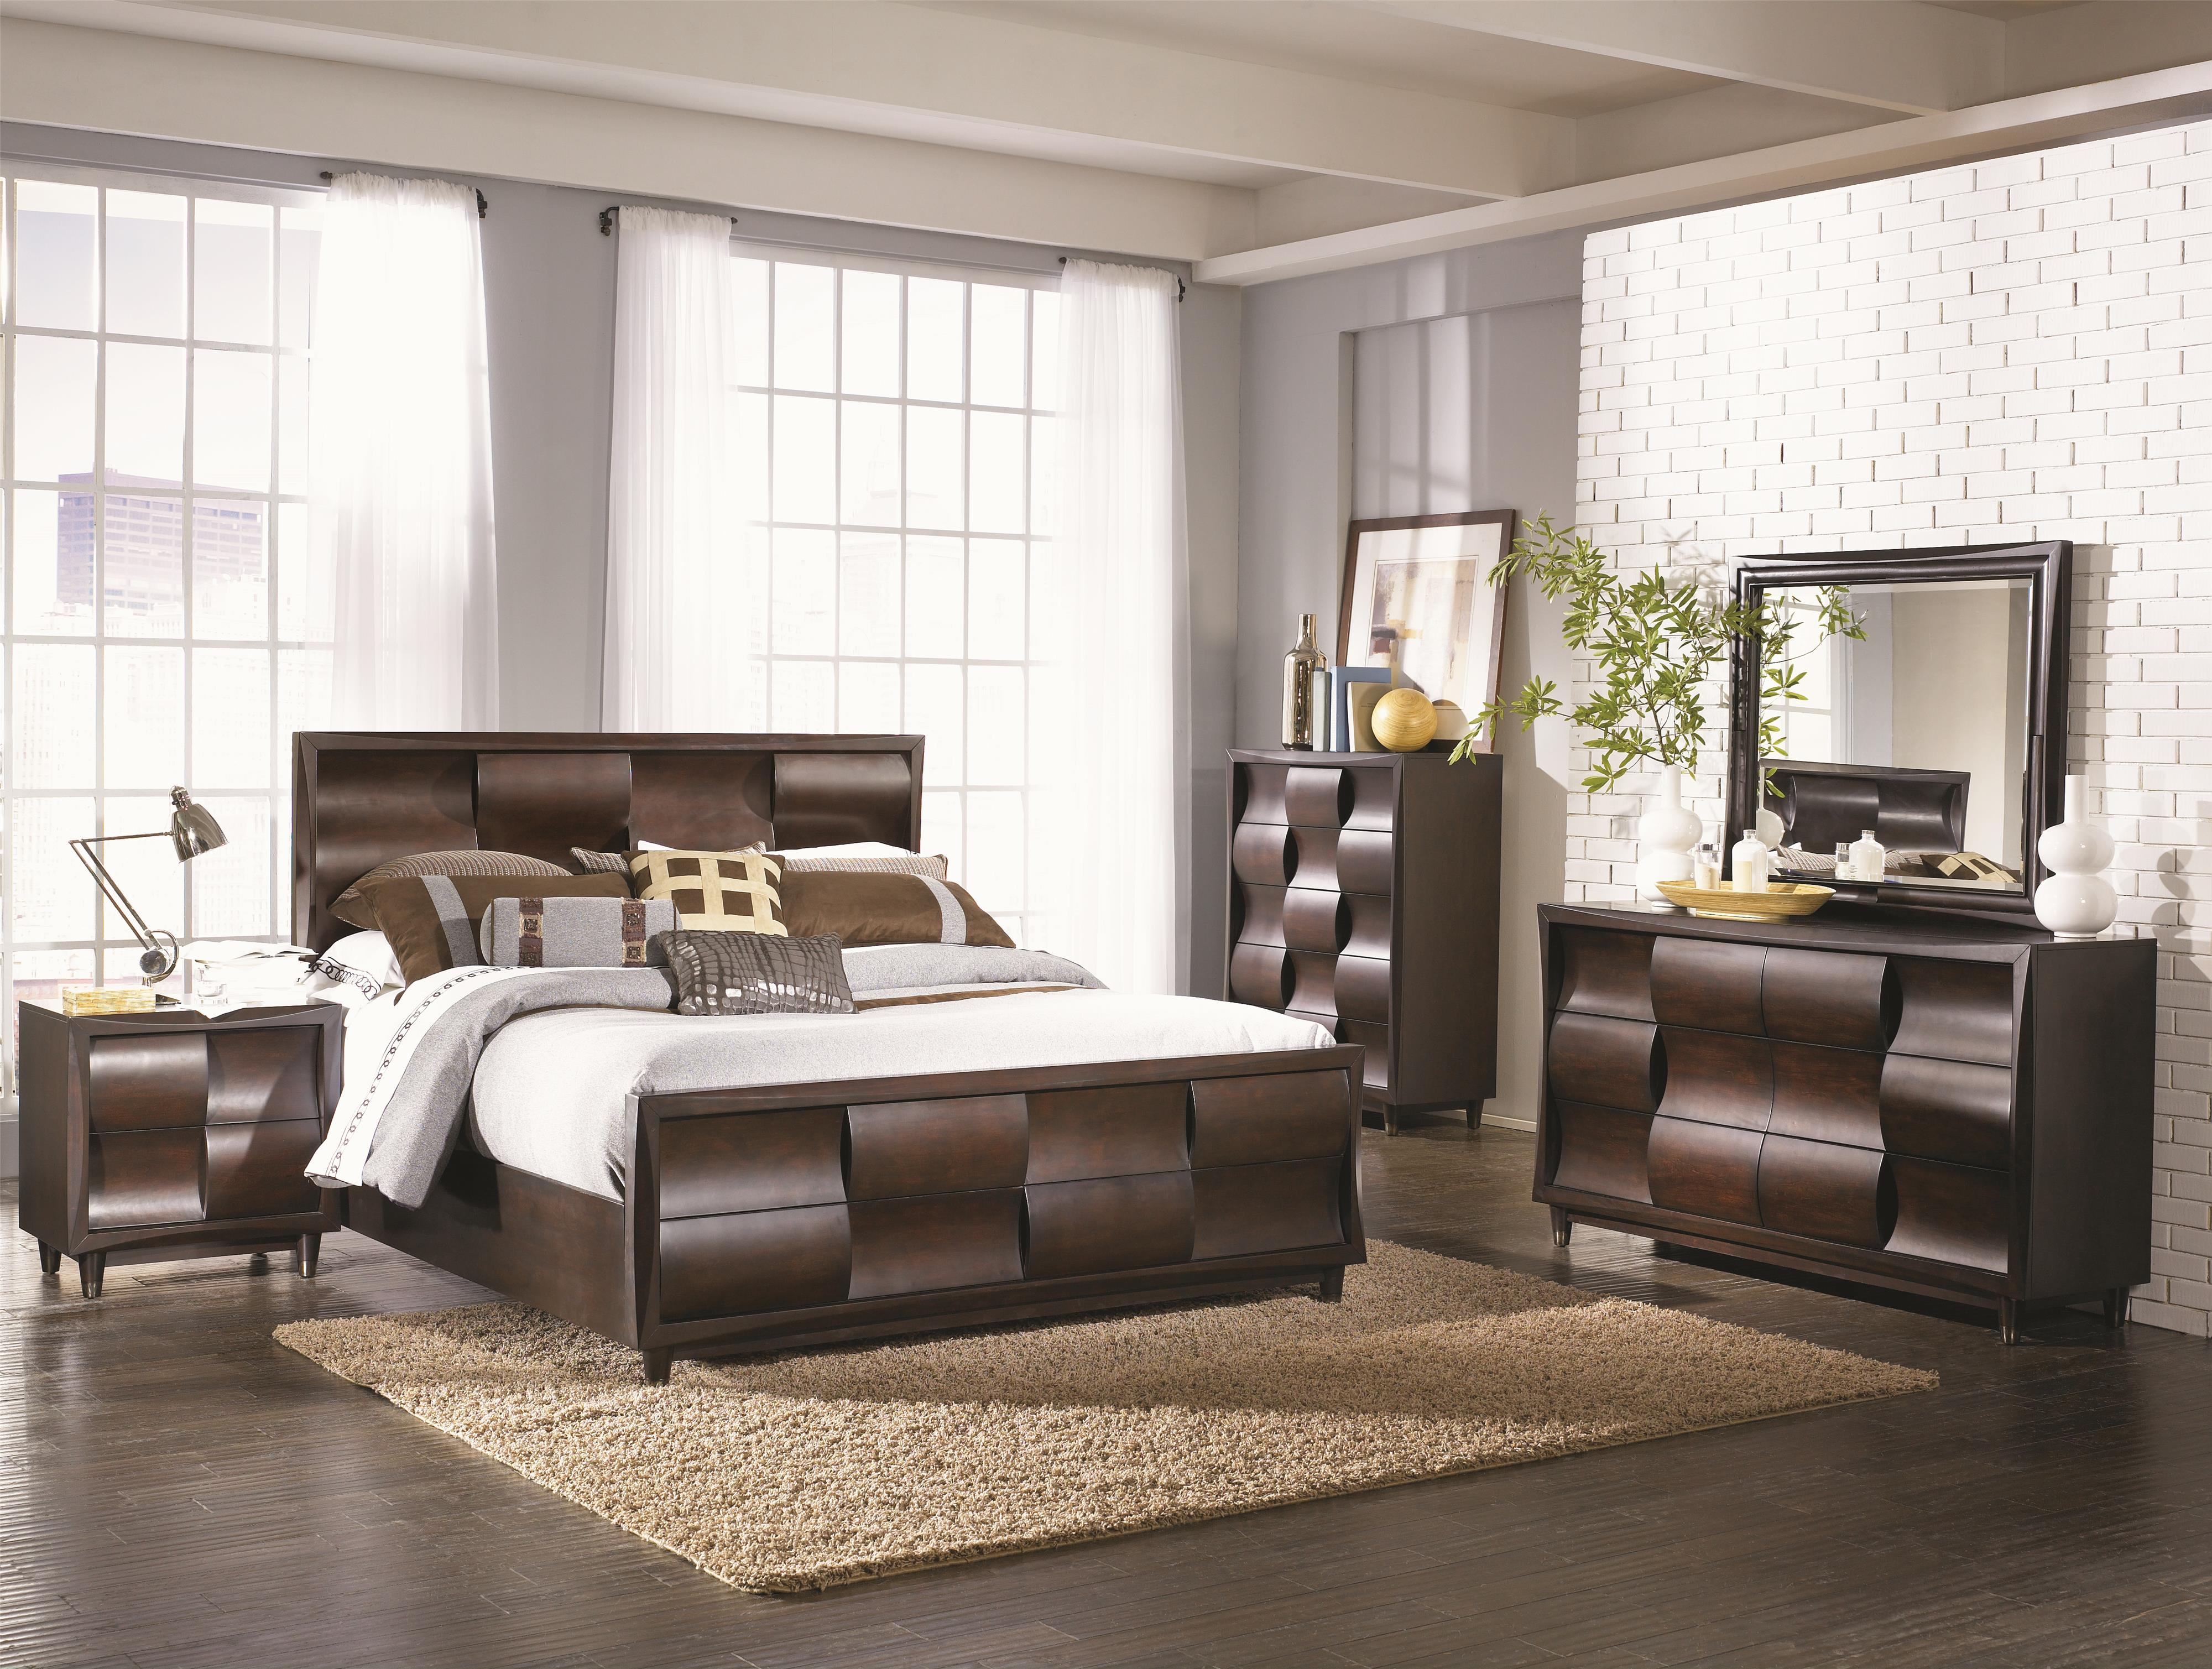 Magnussen Home Fuqua King Bedroom Group - Item Number: B1794 K Bedroom Group 1